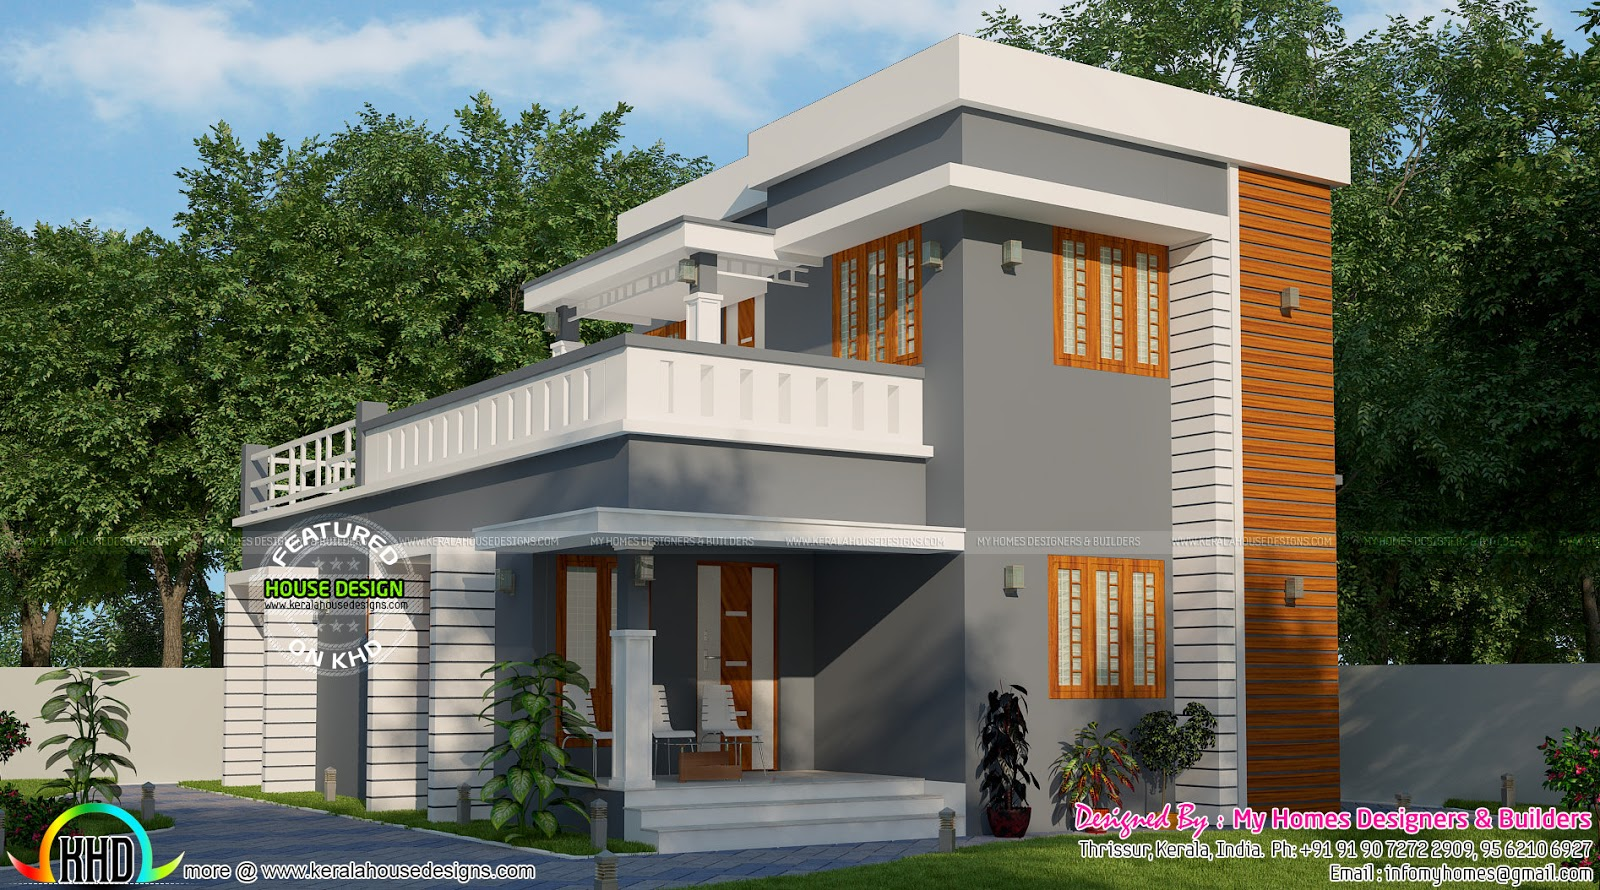 town plan kerala house html with Simple Low Budget 3 Bedroom House on 10 Marla Corner Plot 3d Front Elevation also New Modern Villa Design additionally Islamabad Homes Designs Pakistan also Handicap accessible small house plans further 3d Isometric Small House Plans.